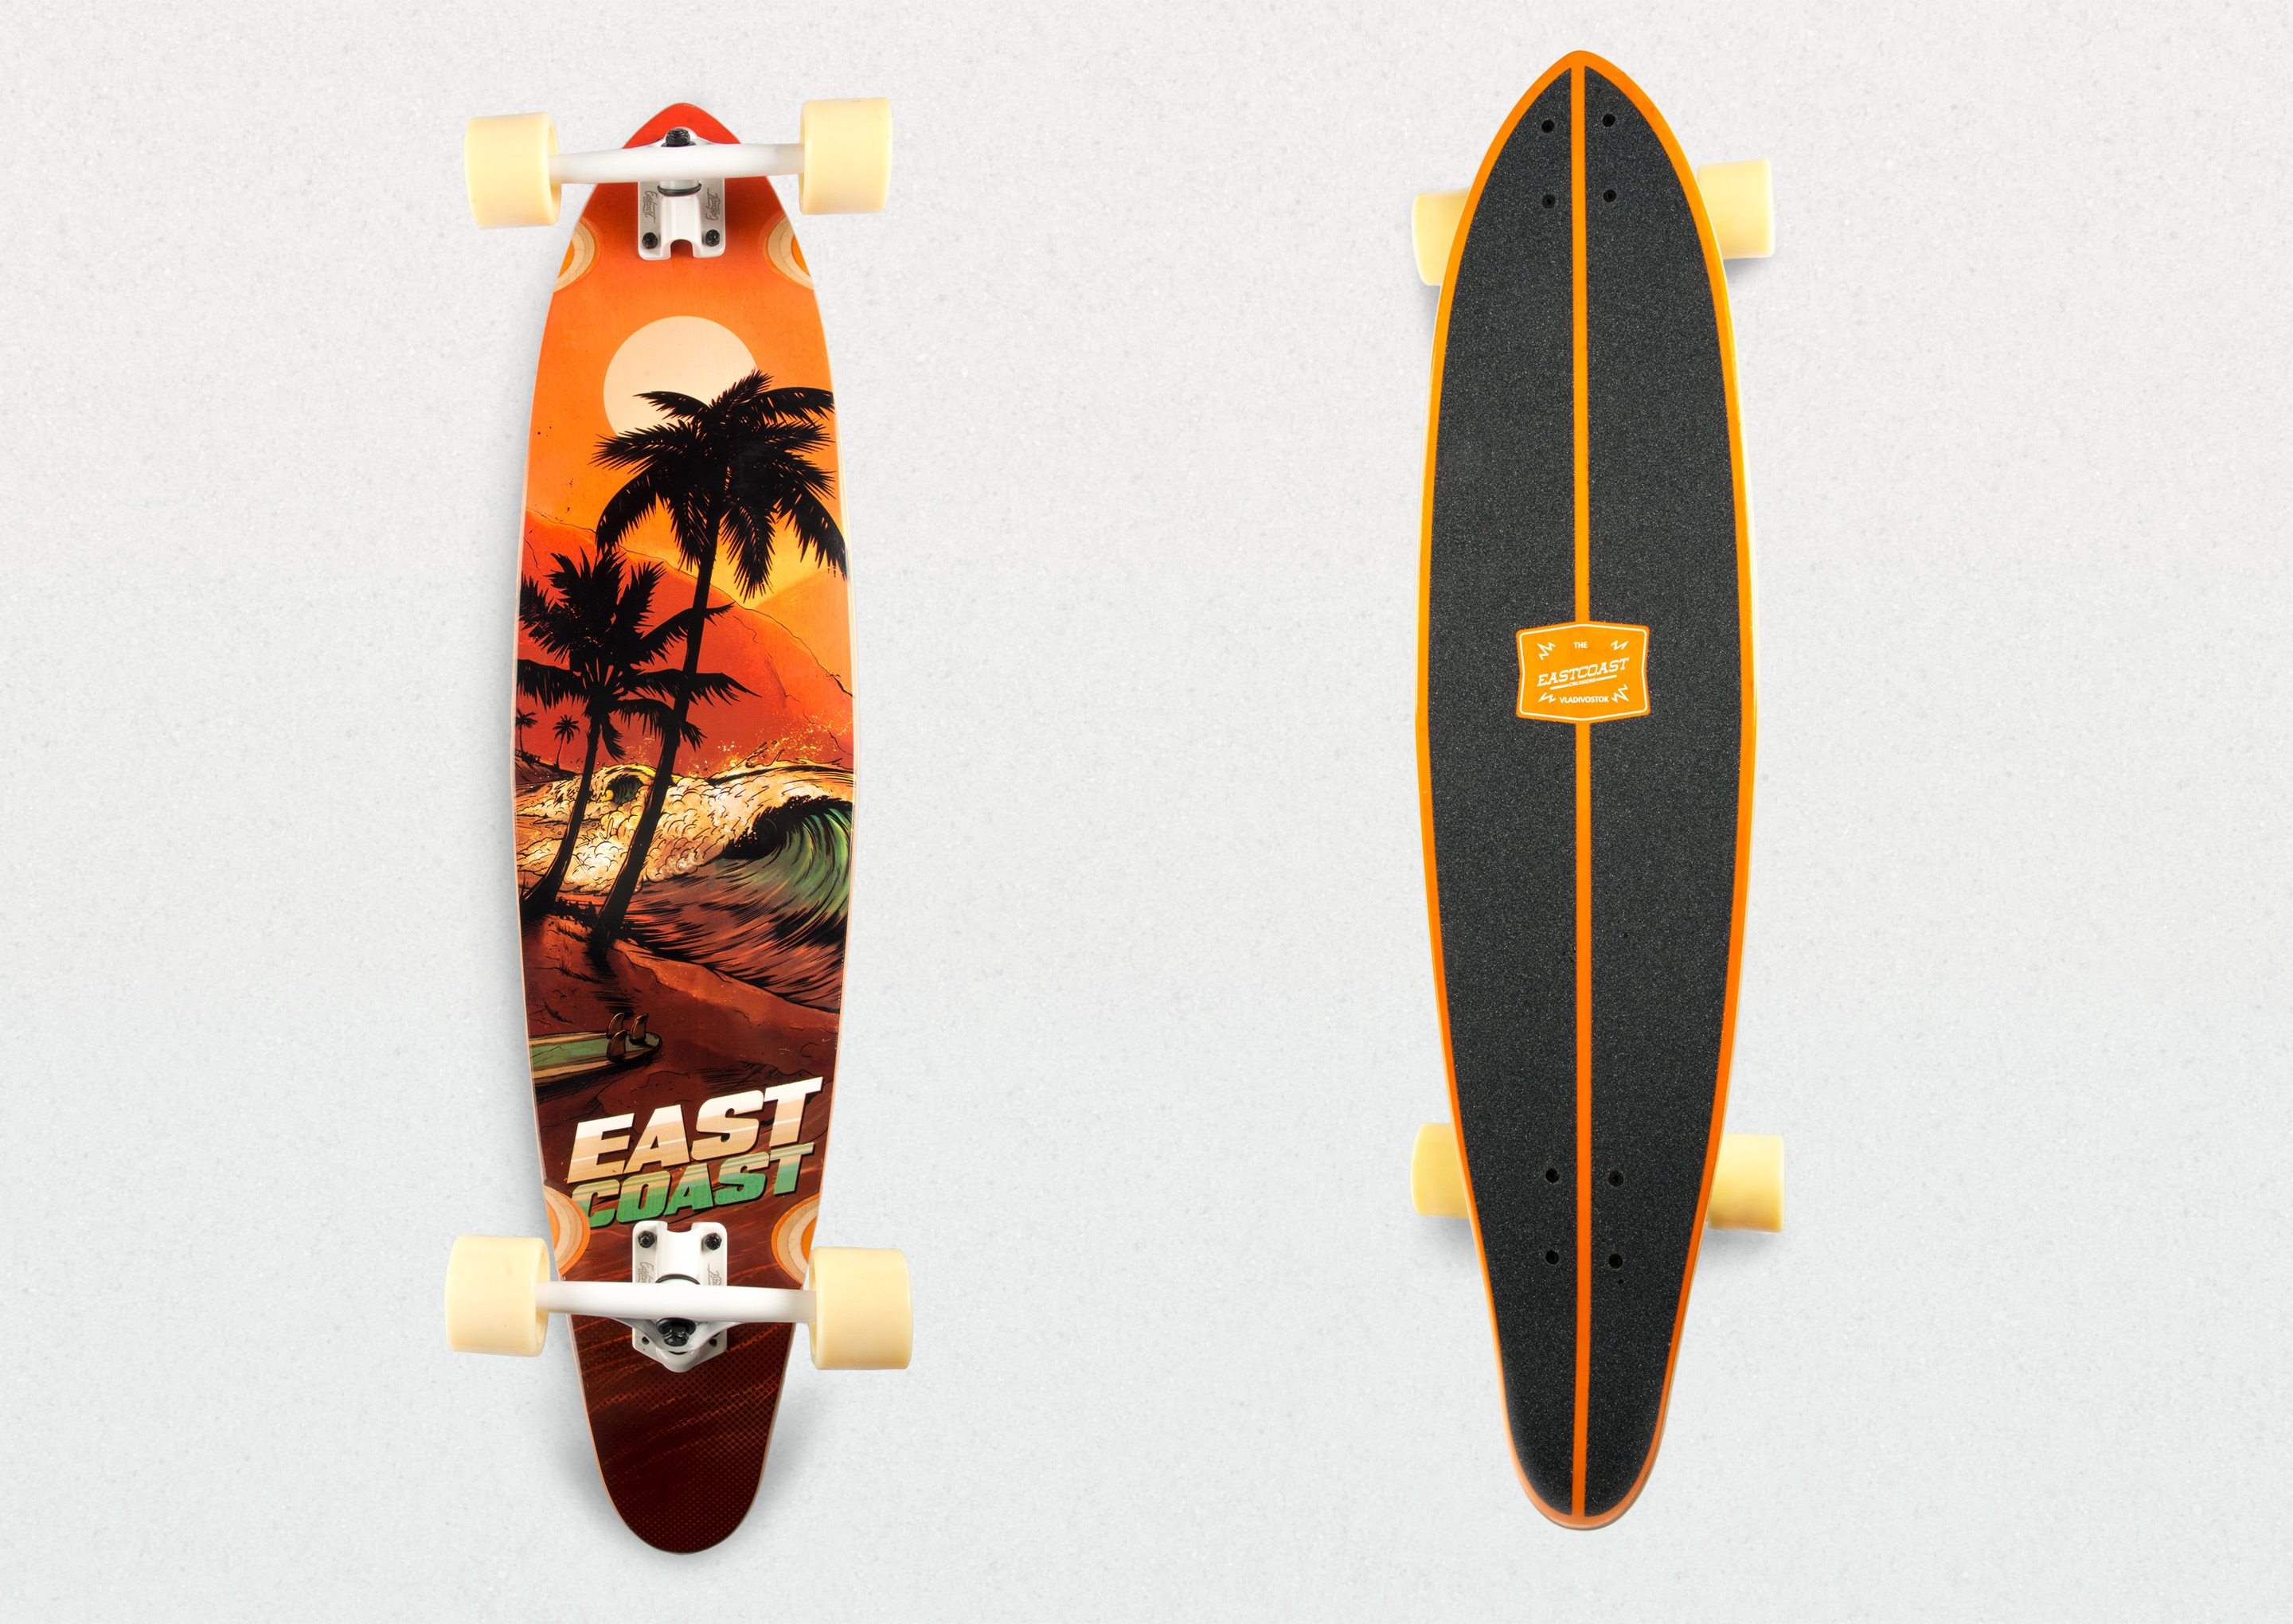 Eastcoast cruisers: Surf Paradise